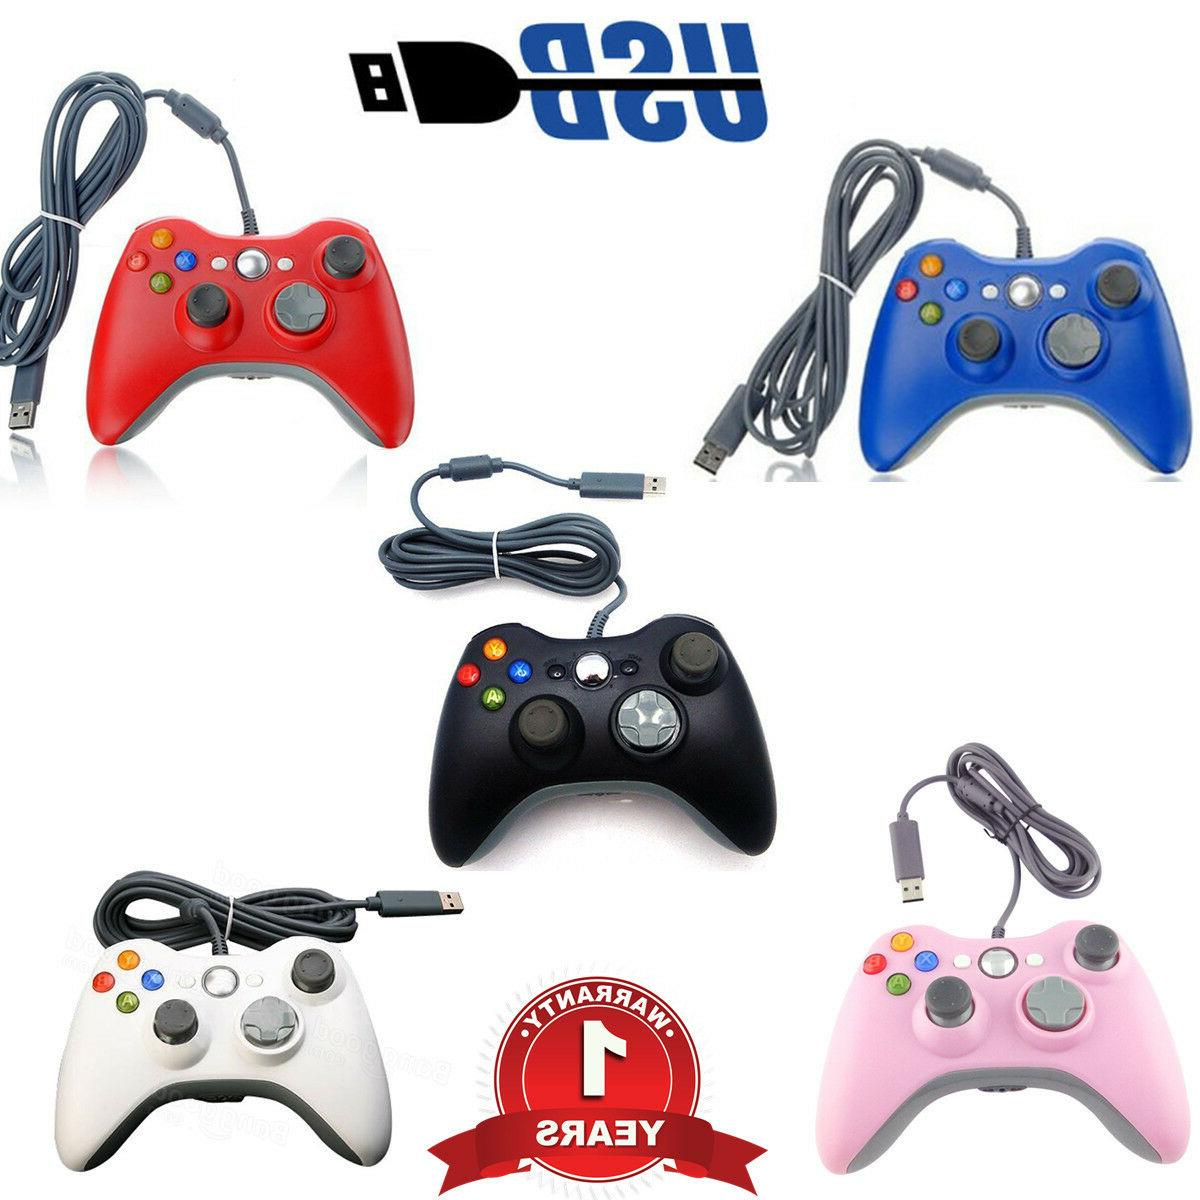 USB Controller for Xbox